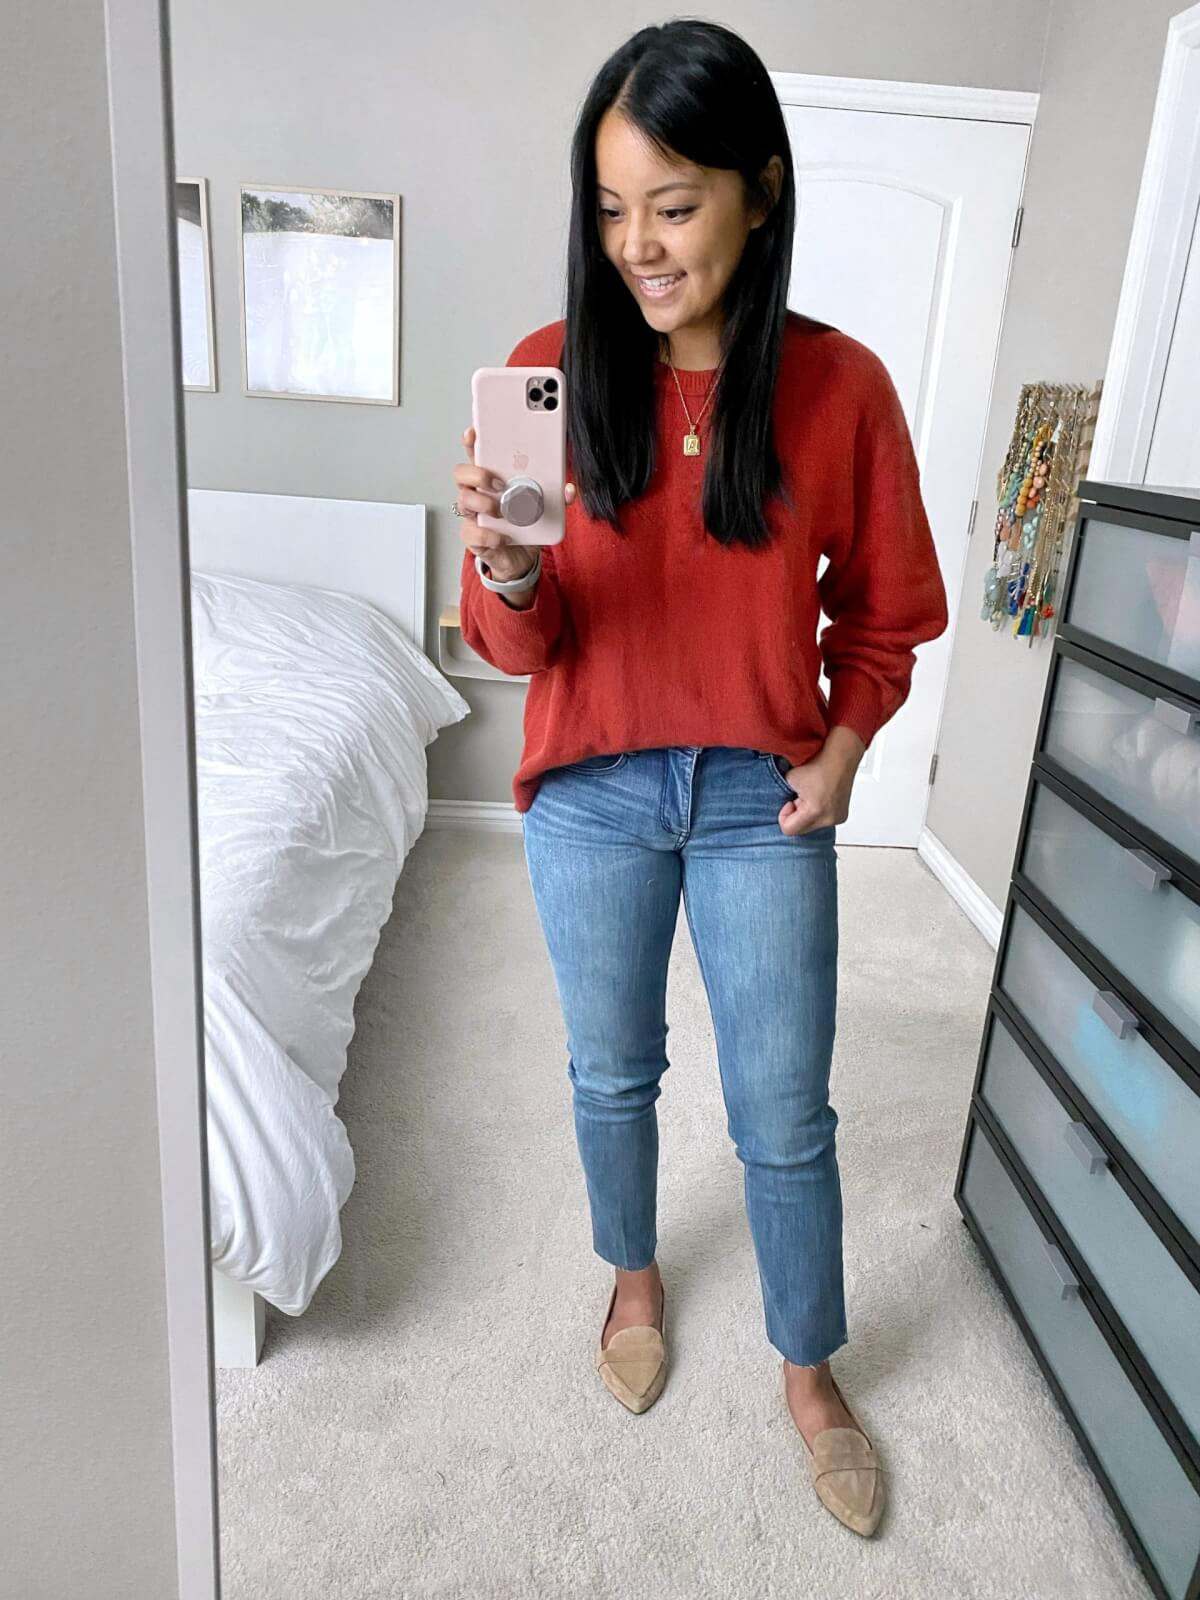 NSale Nicer Casual Outfit: nude suede loafers + Wit & Wisdom light denim straight leg jeans + Treasure & Bond red orange sweater + gold initial pendant necklace